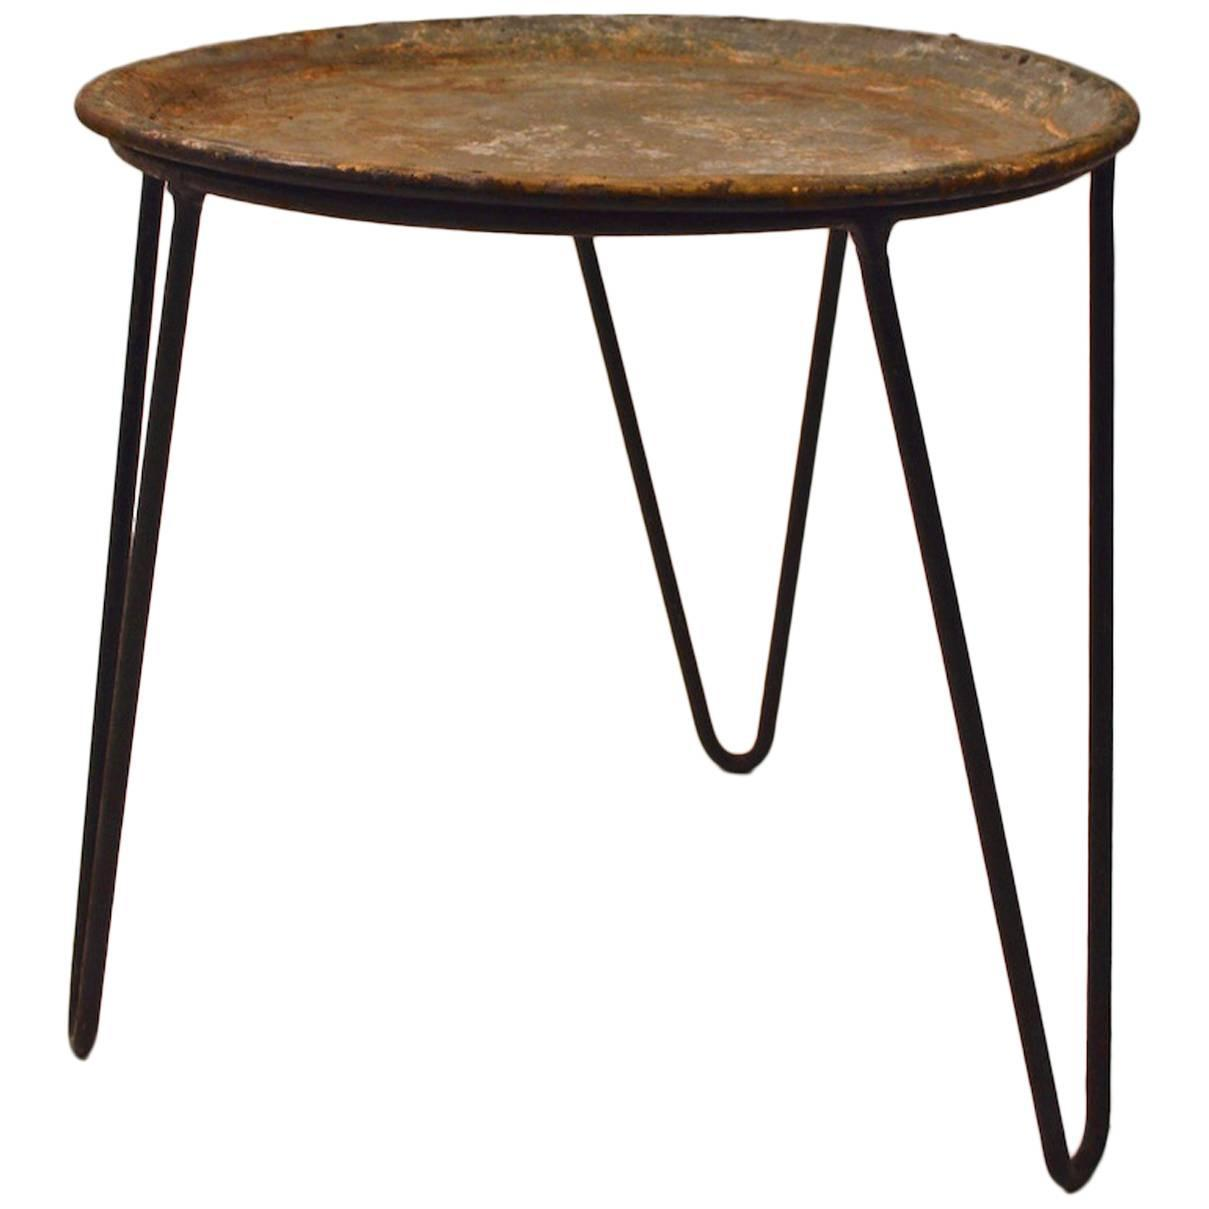 Round Wrought Iron And Zinc Plant Stand Tray Table With